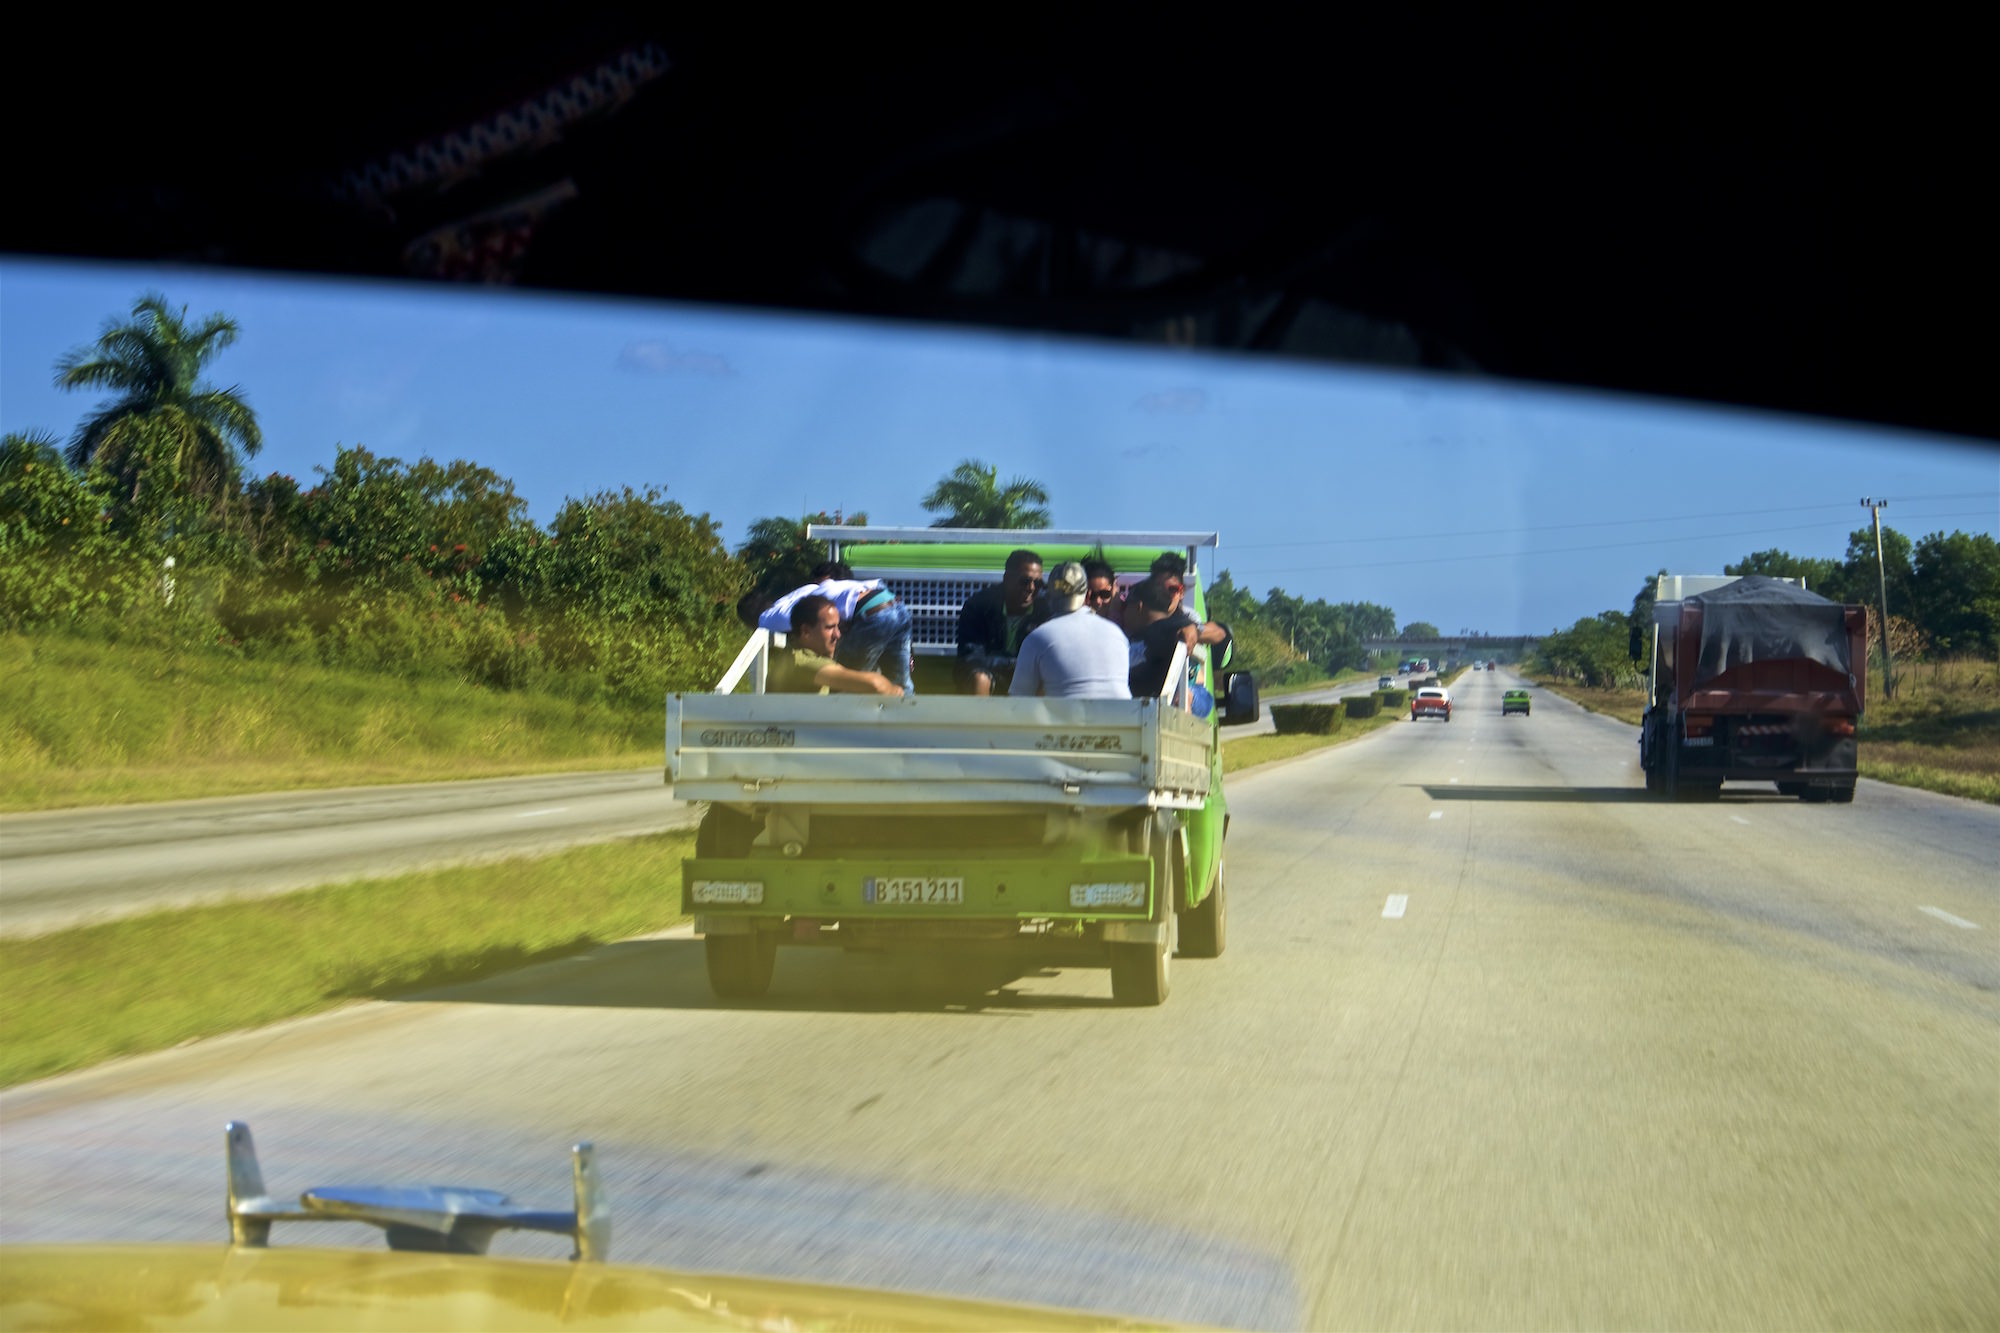 Transportation on Cuban highways. Daily life in Cuba.